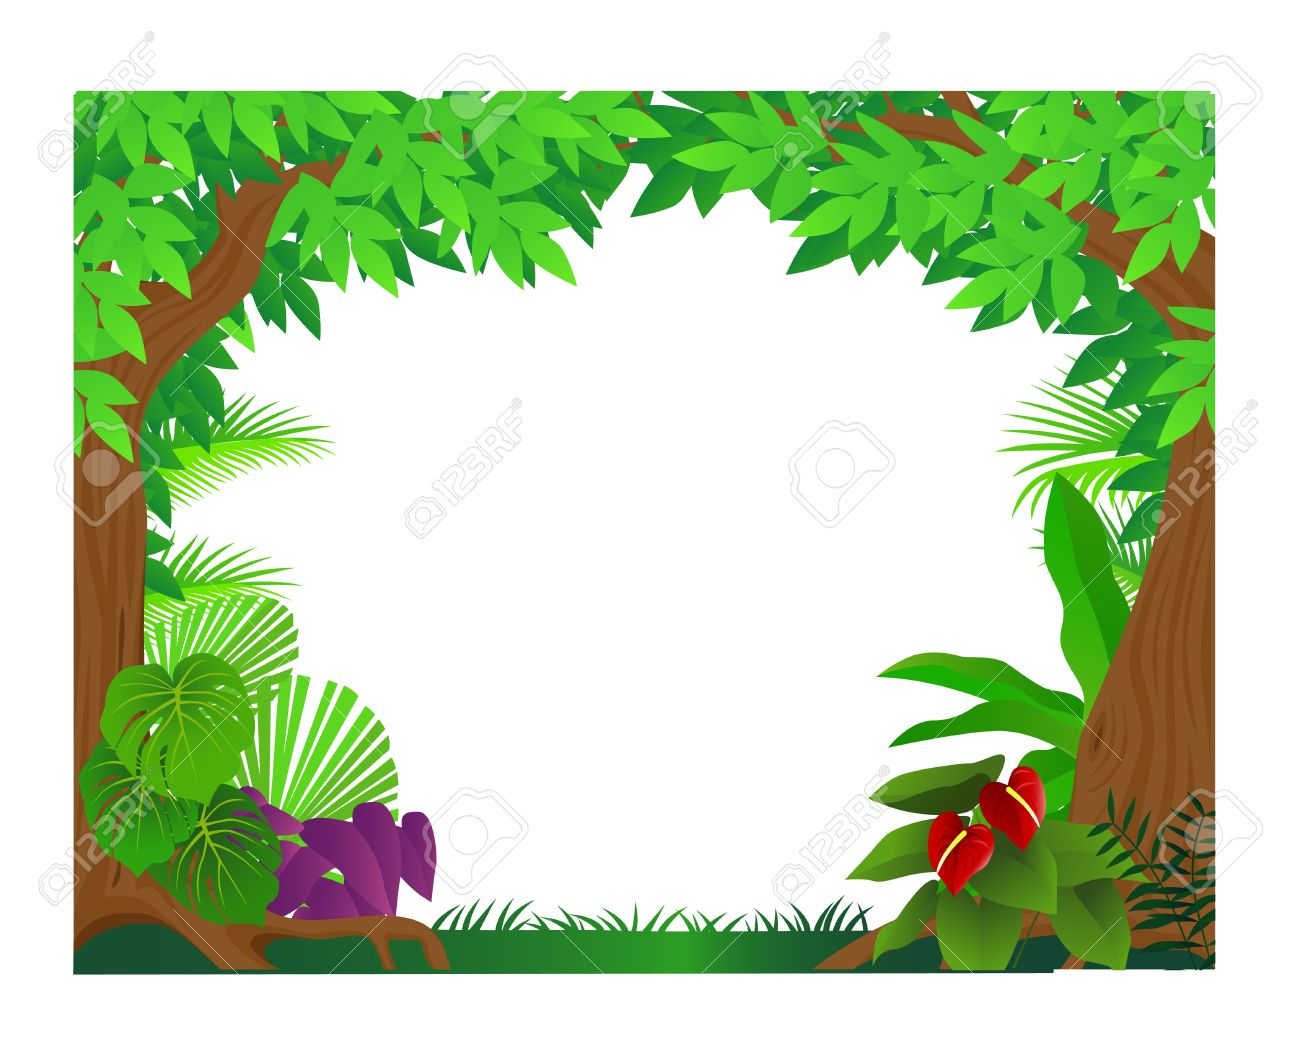 Jungle background clipart 2 » Clipart Station.